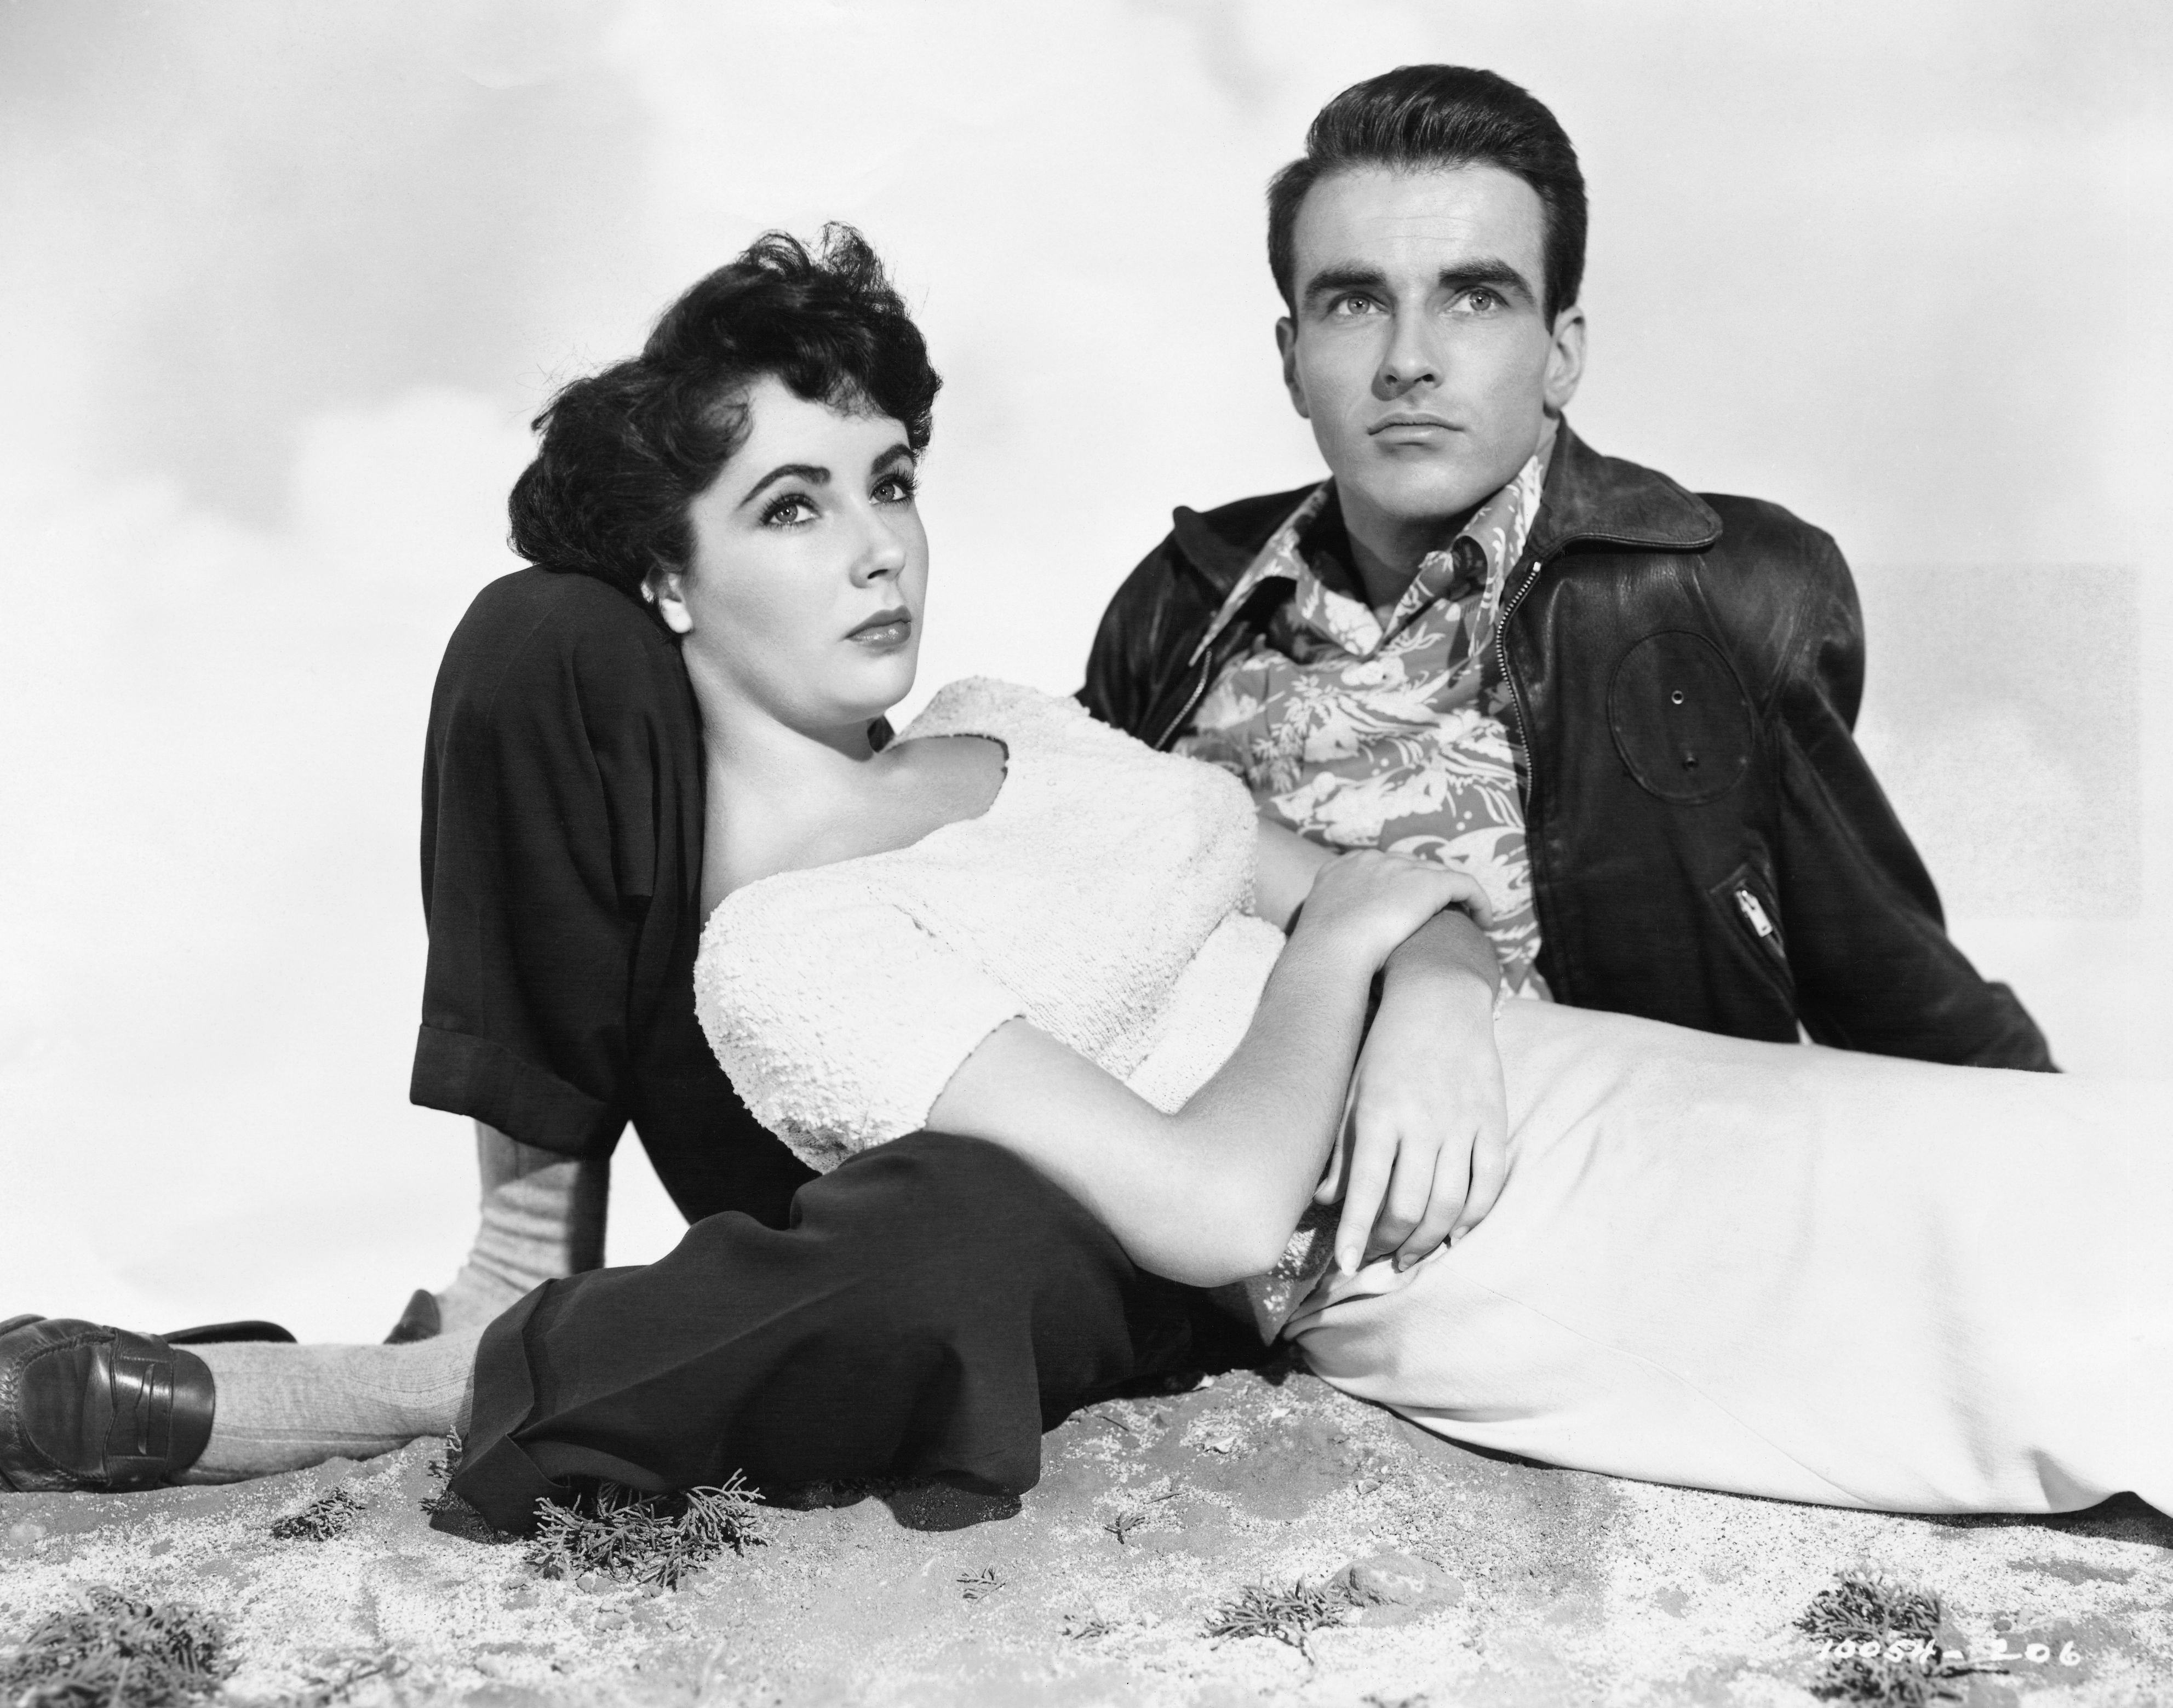 """Elizabeth Taylor and Montgomery Clift  in the 1951 film """"A Place in the Sun"""" on  01 January, 1951   Photo: Getty Images"""